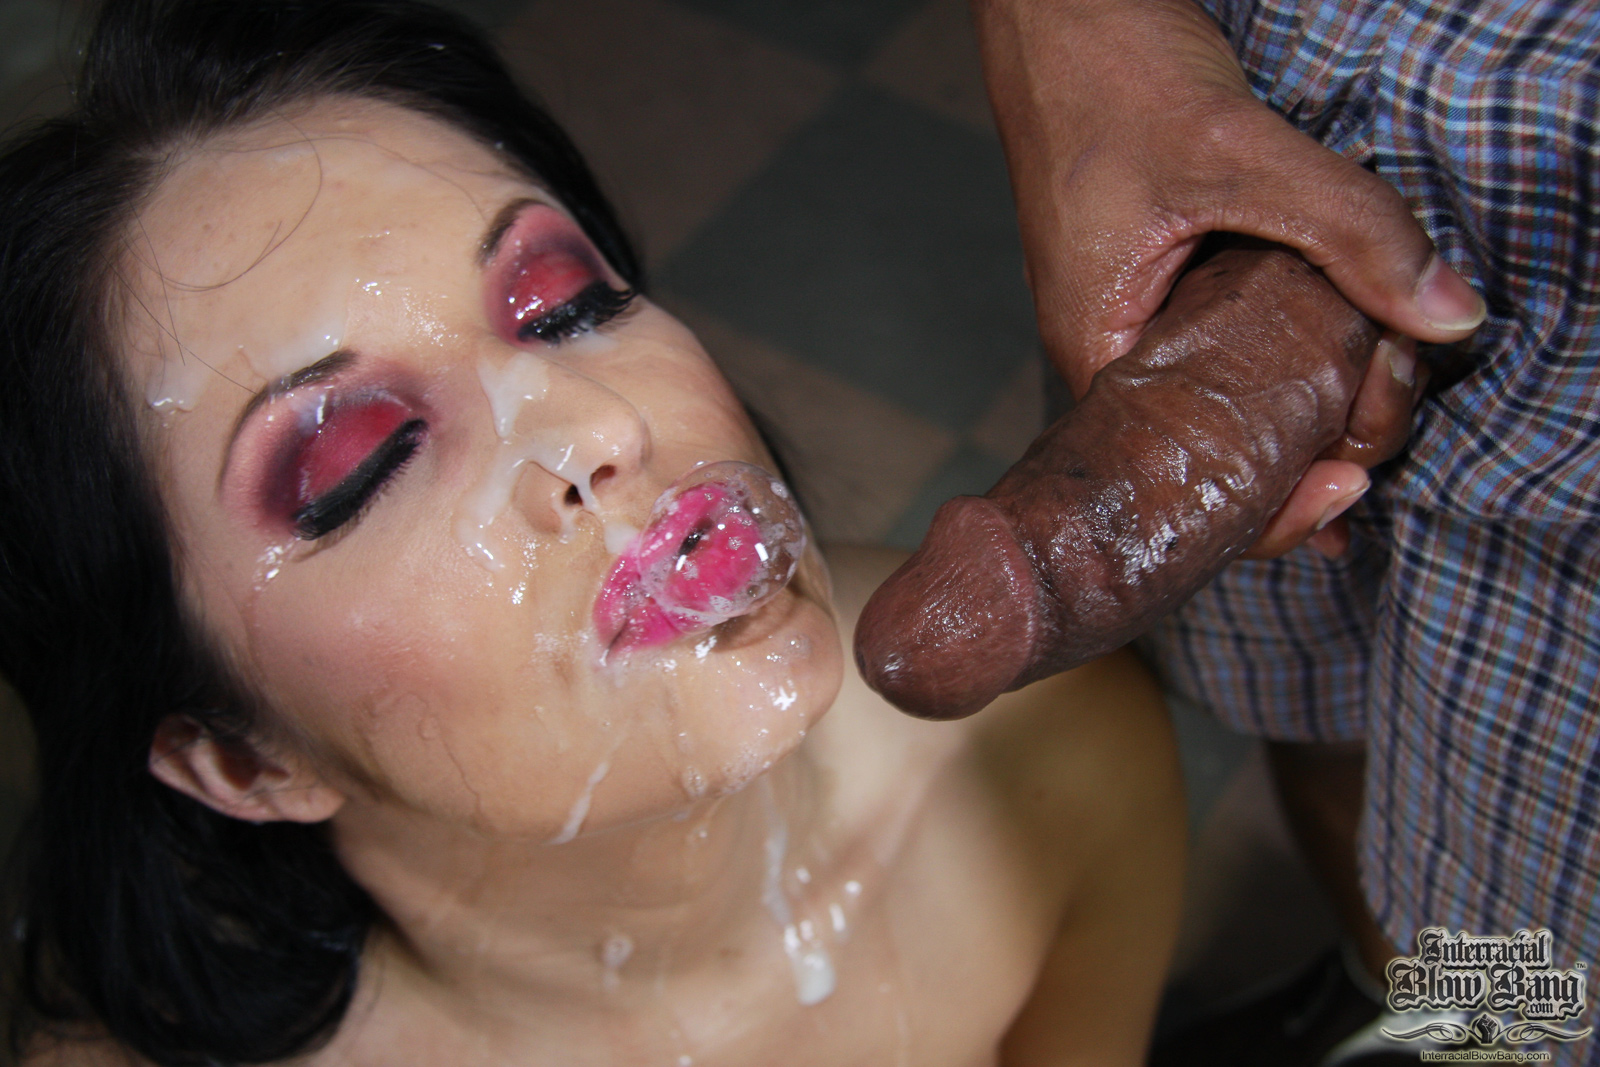 On cum girls beautiful face with their